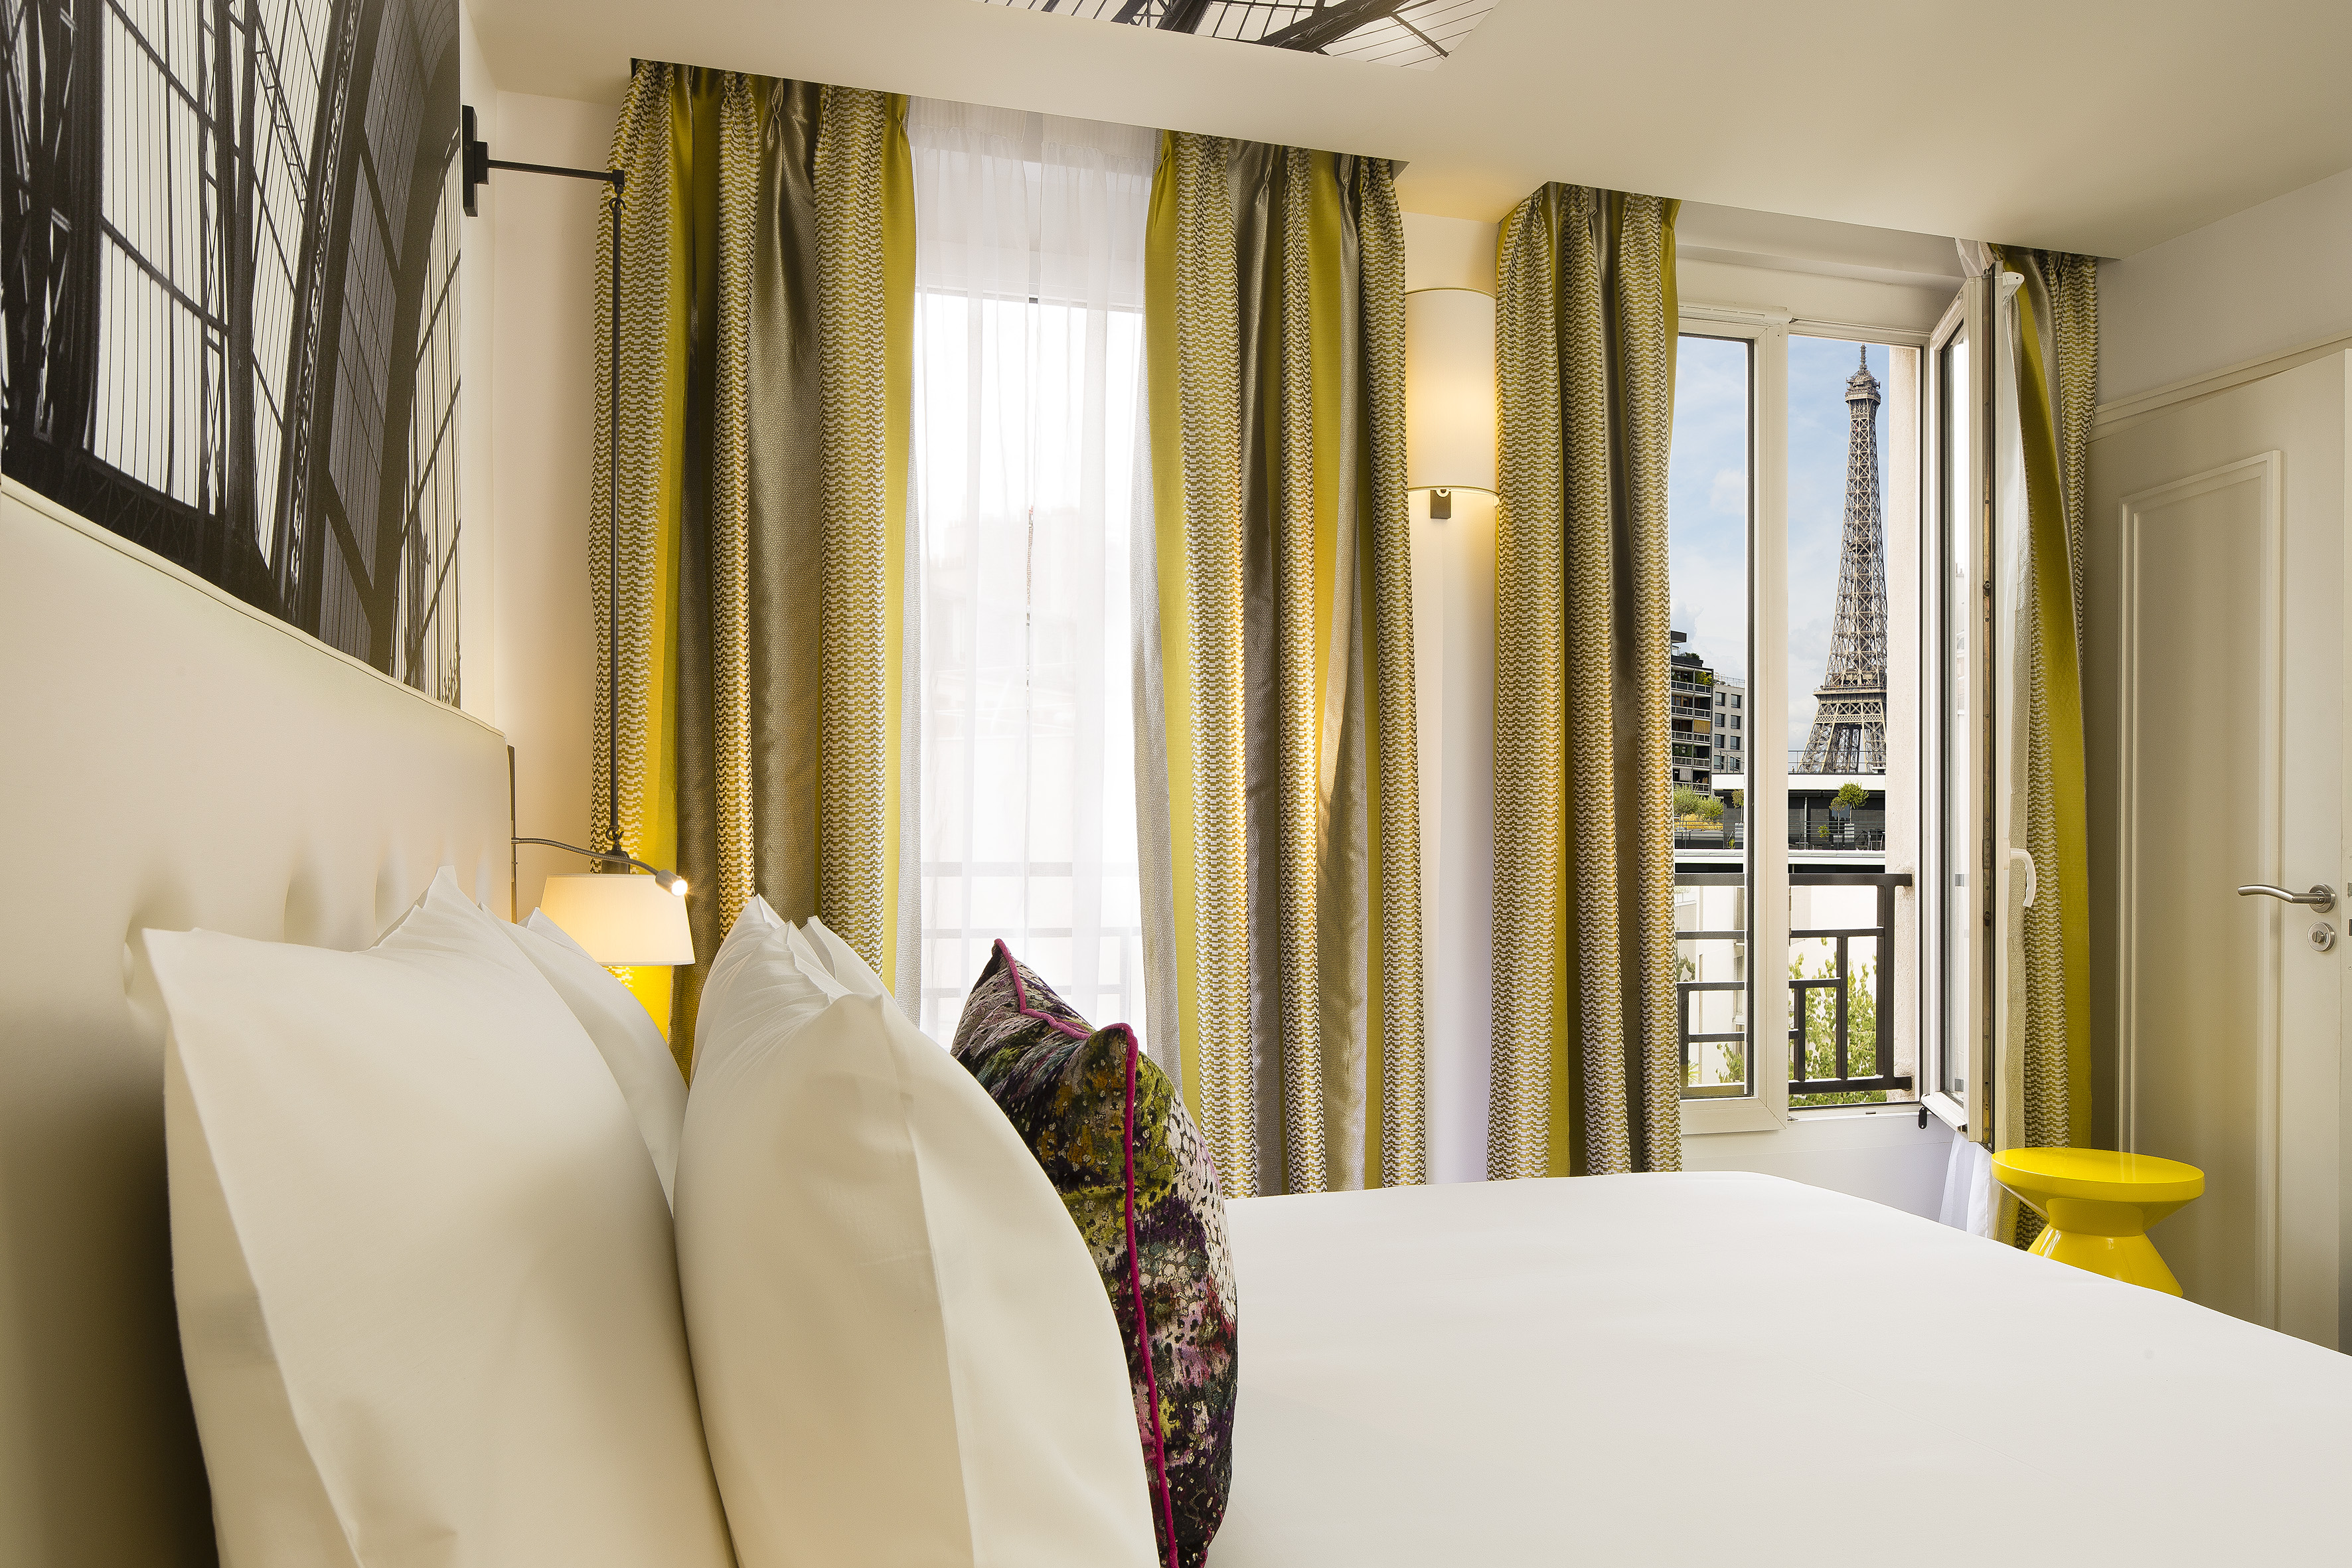 723/Gustave/chambre_/Gst/HOTEL_GUSTAVE_-_Gustave_-_2_-_Chambre_double.jpg